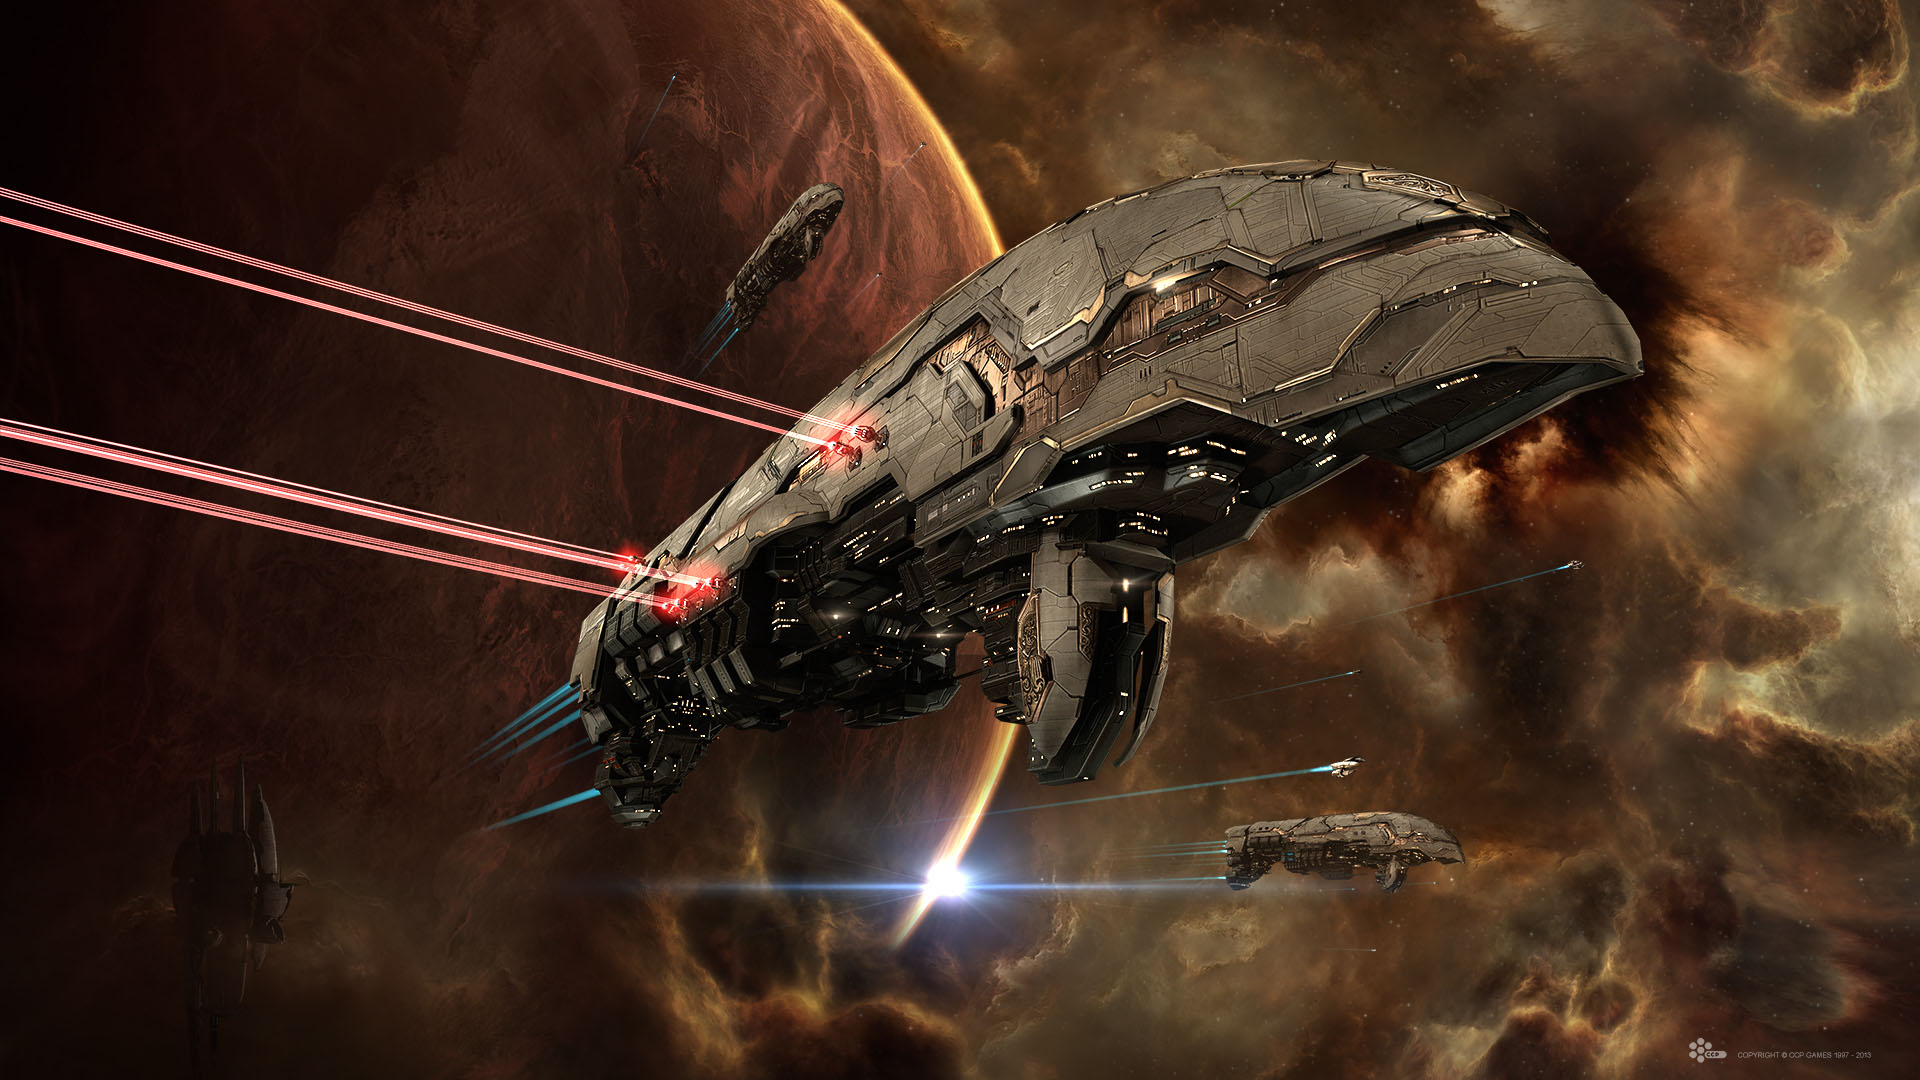 EVE beginner's guide: How to get into EVE Online, gaming's most